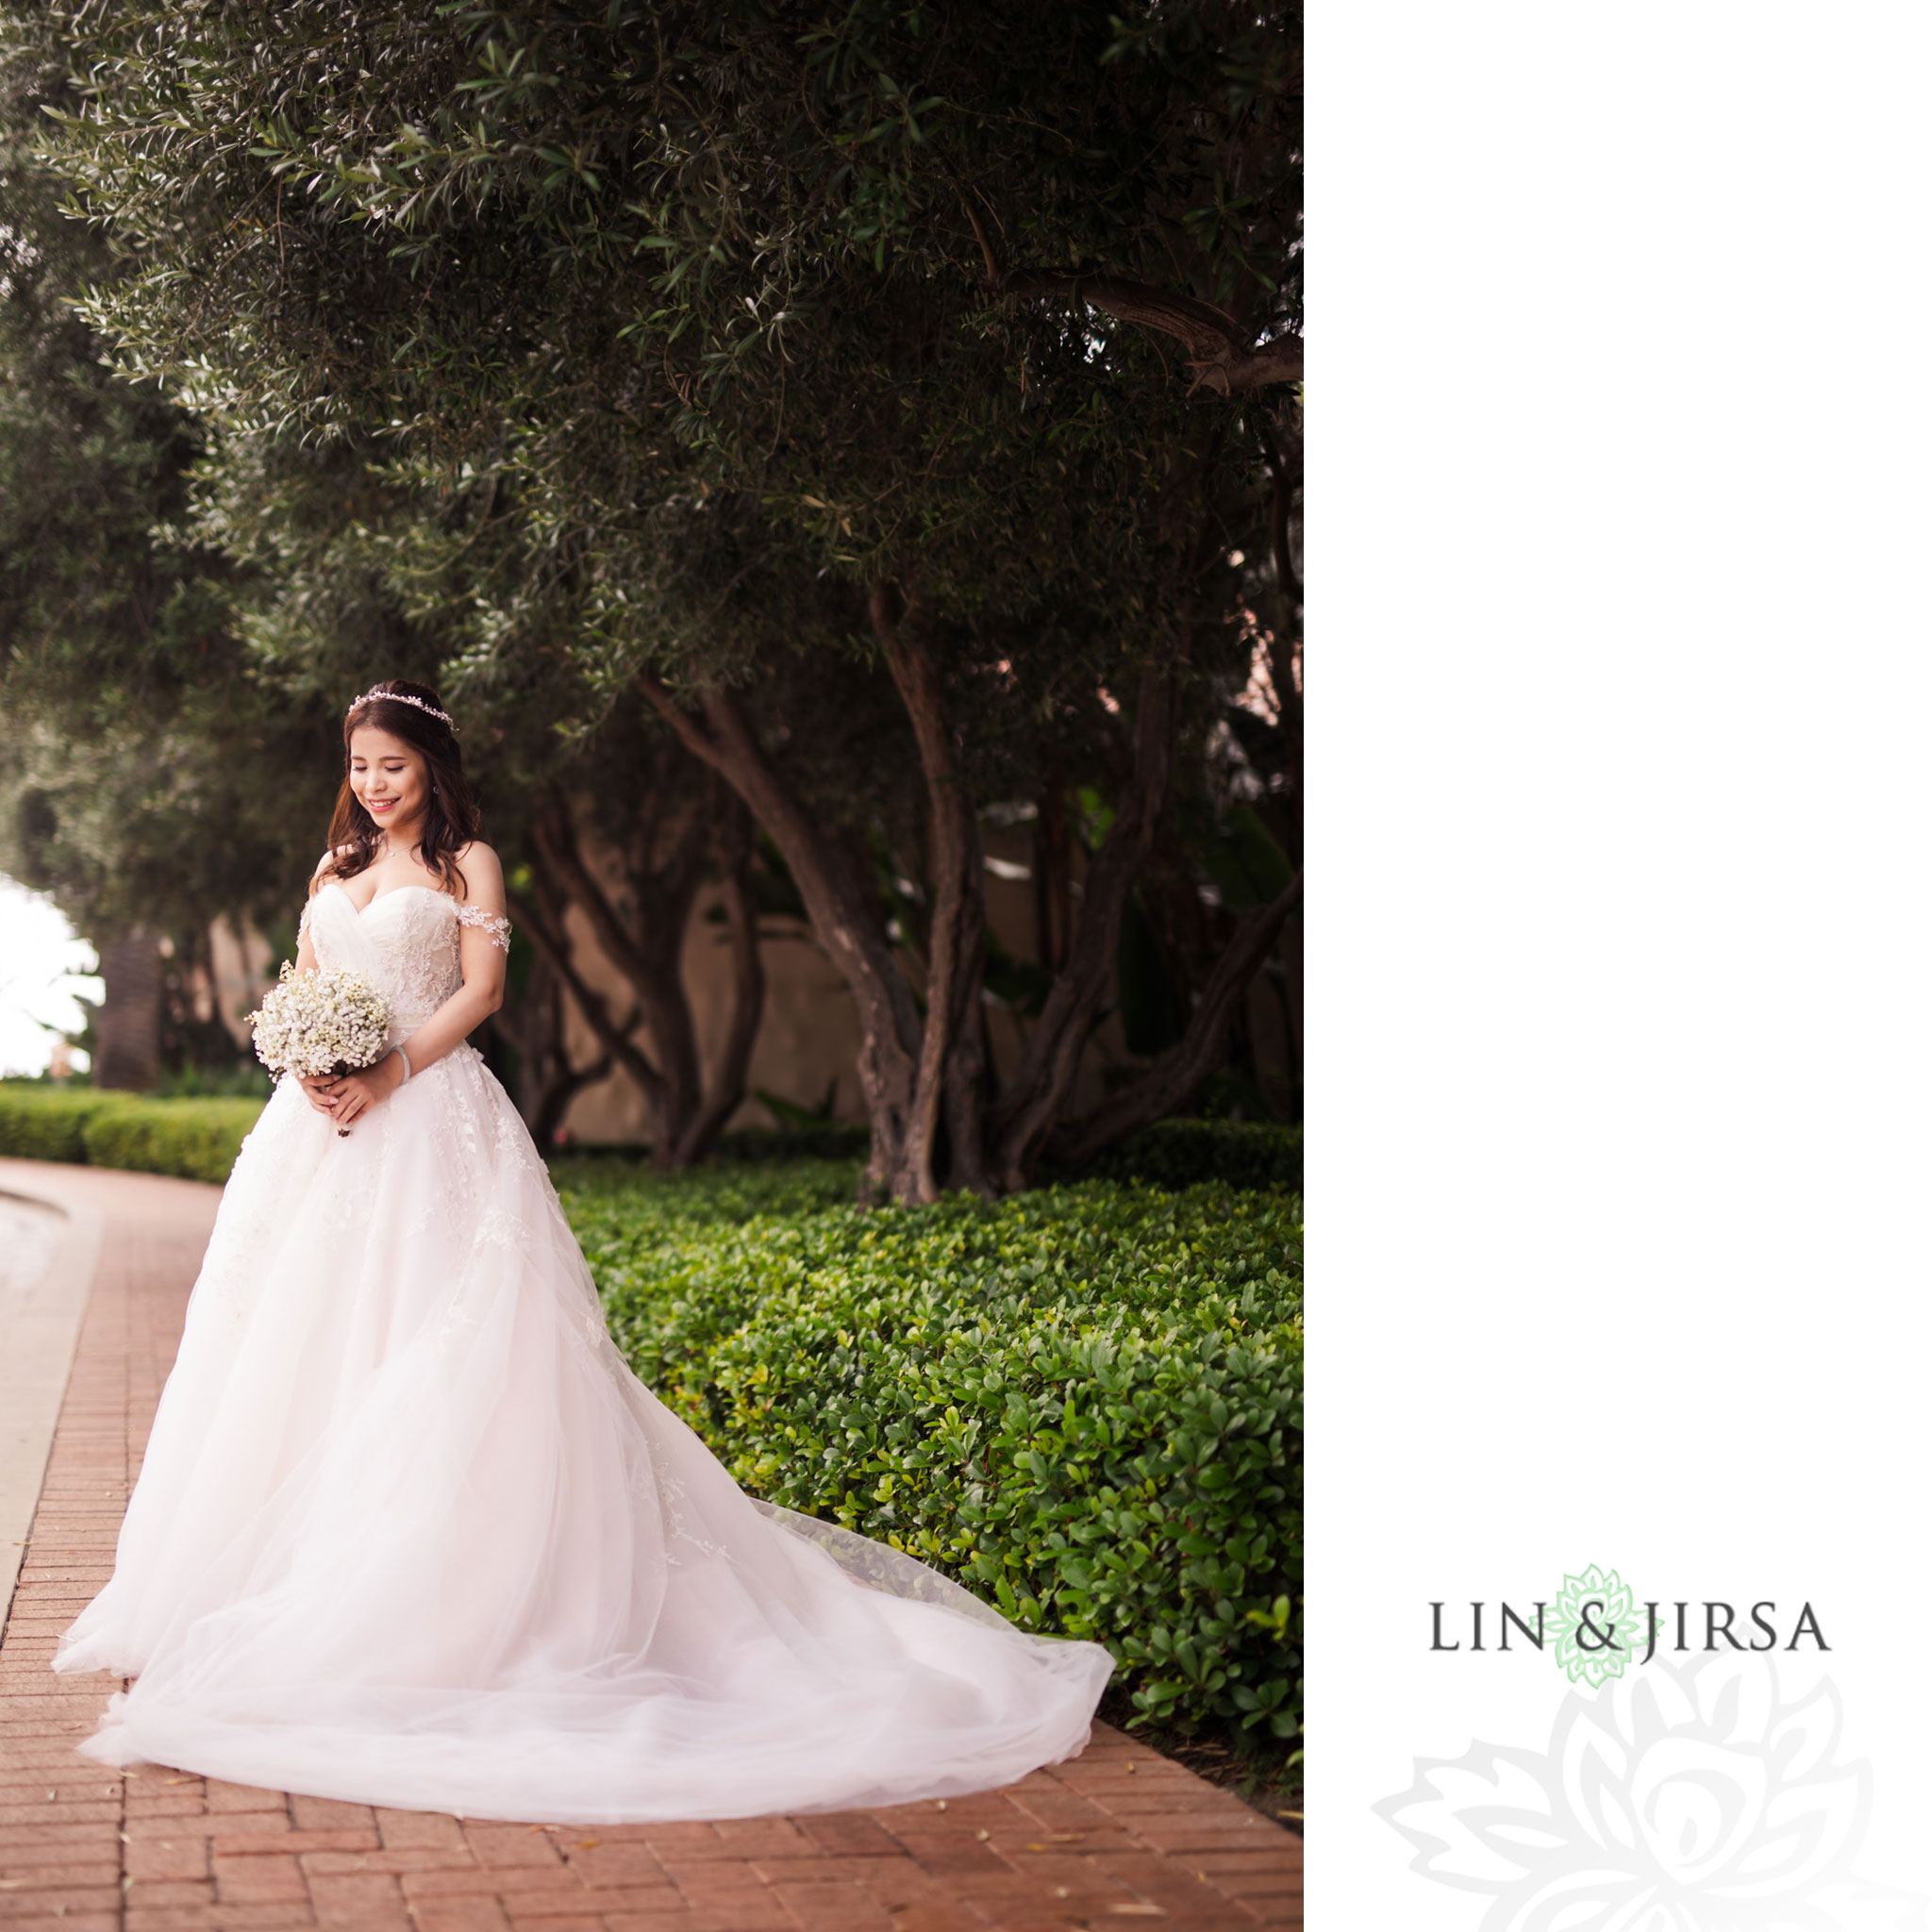 18 pelican hill orange county chinese wedding photography